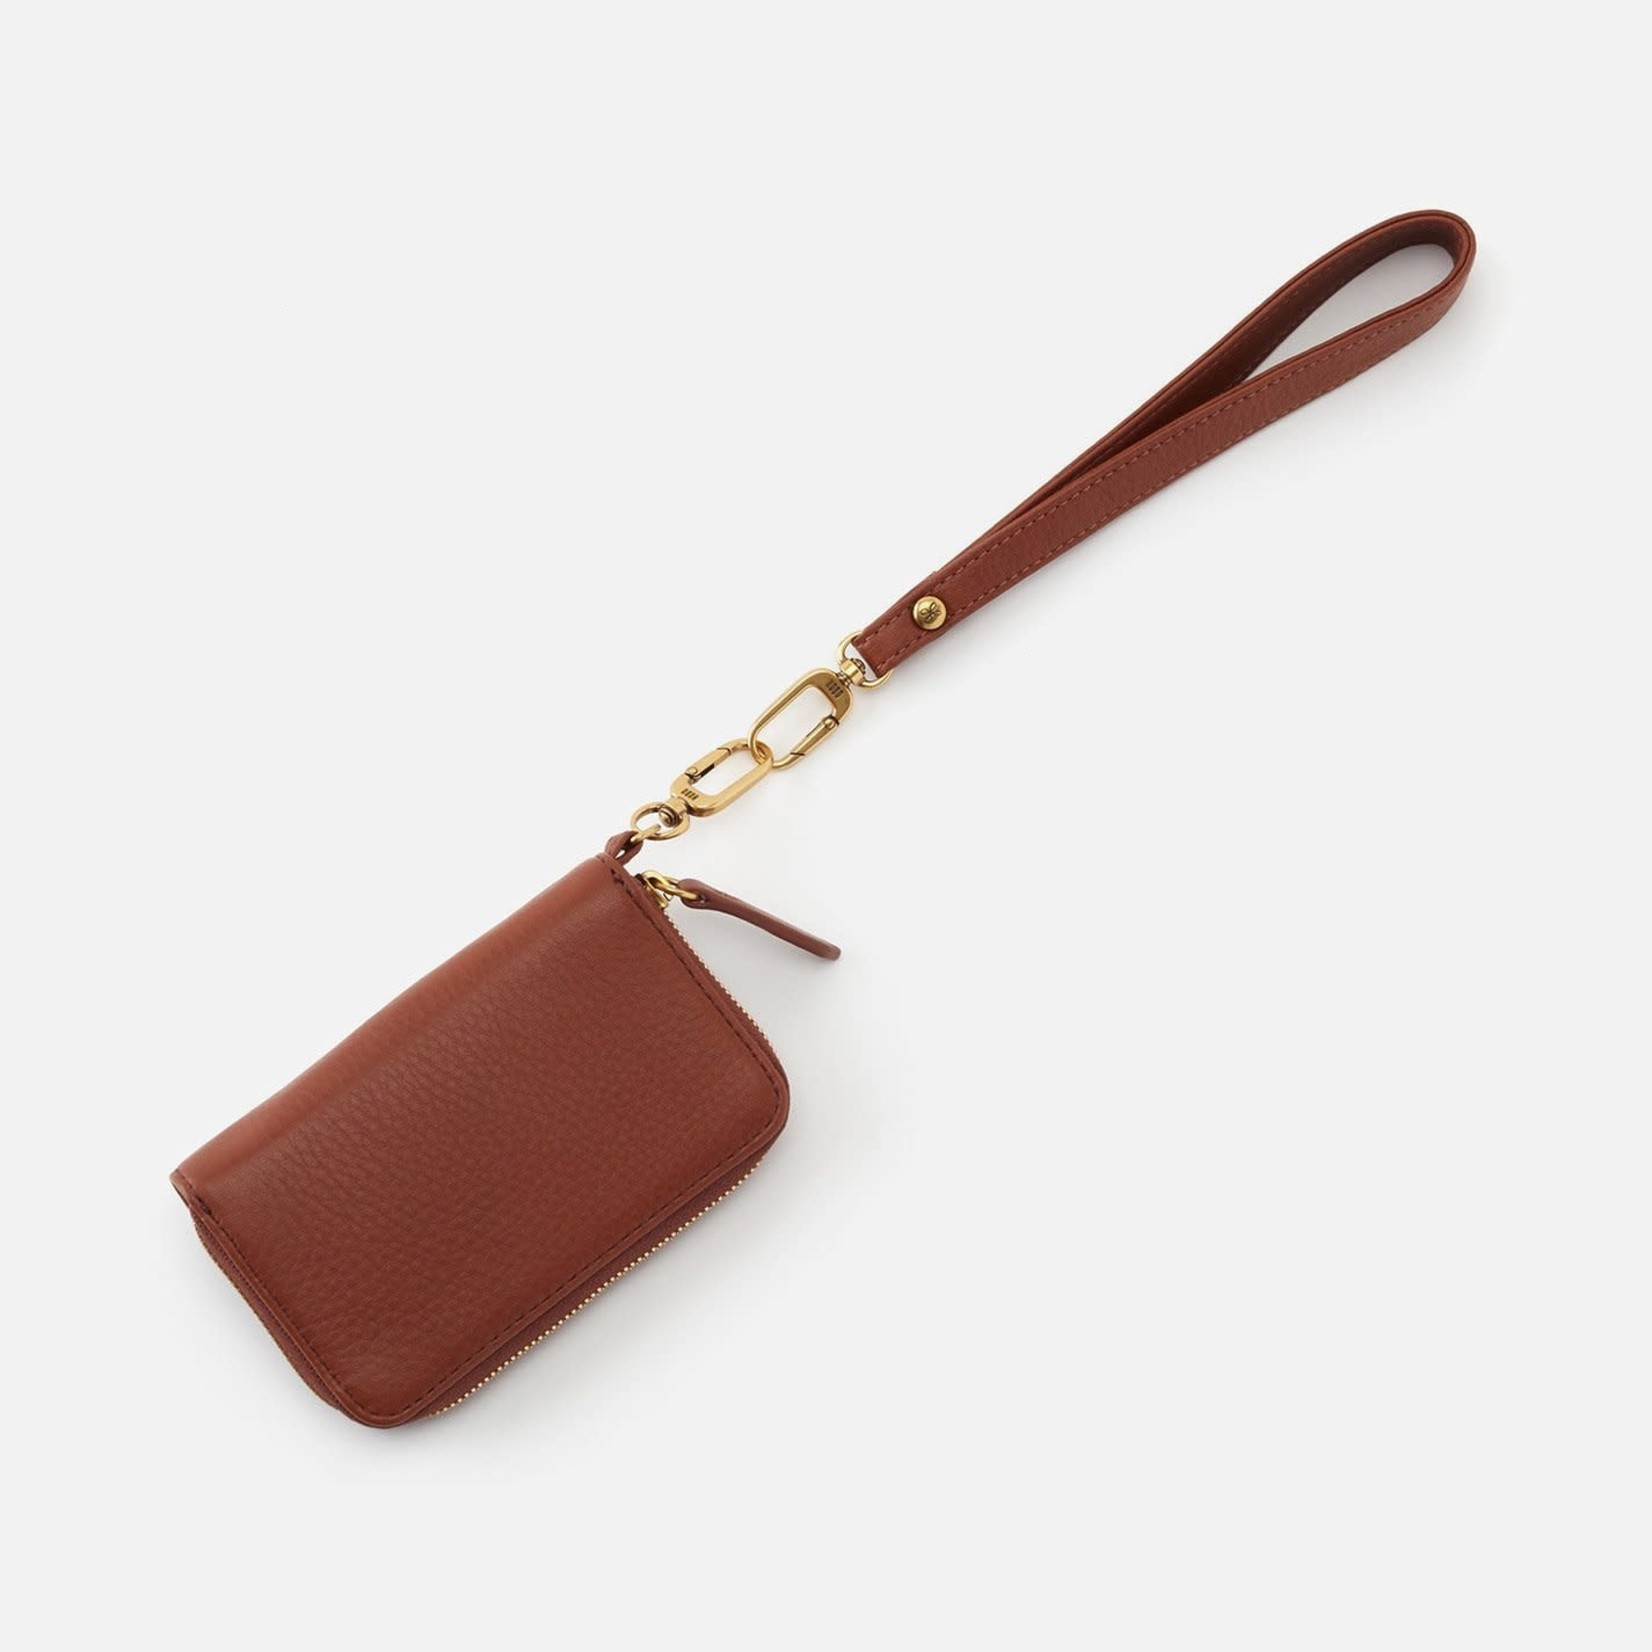 HOBO Grip Toffee Soft Leather Wristlet Strap